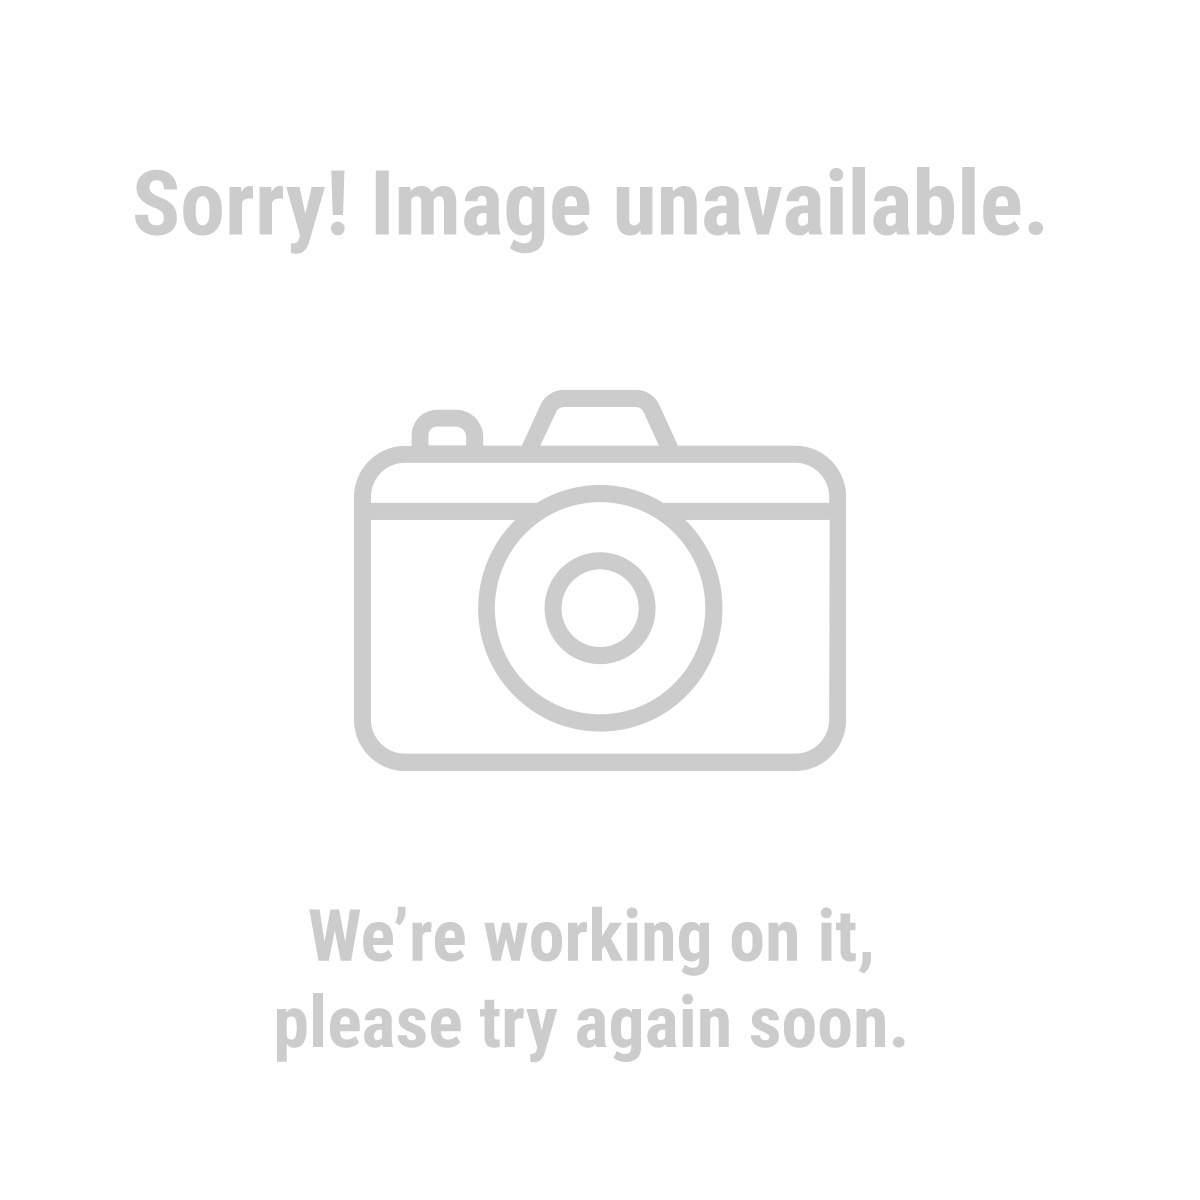 Chicago Electric Welding 91214 Welding Helmet, Auto Darkening with Blue Flame Design